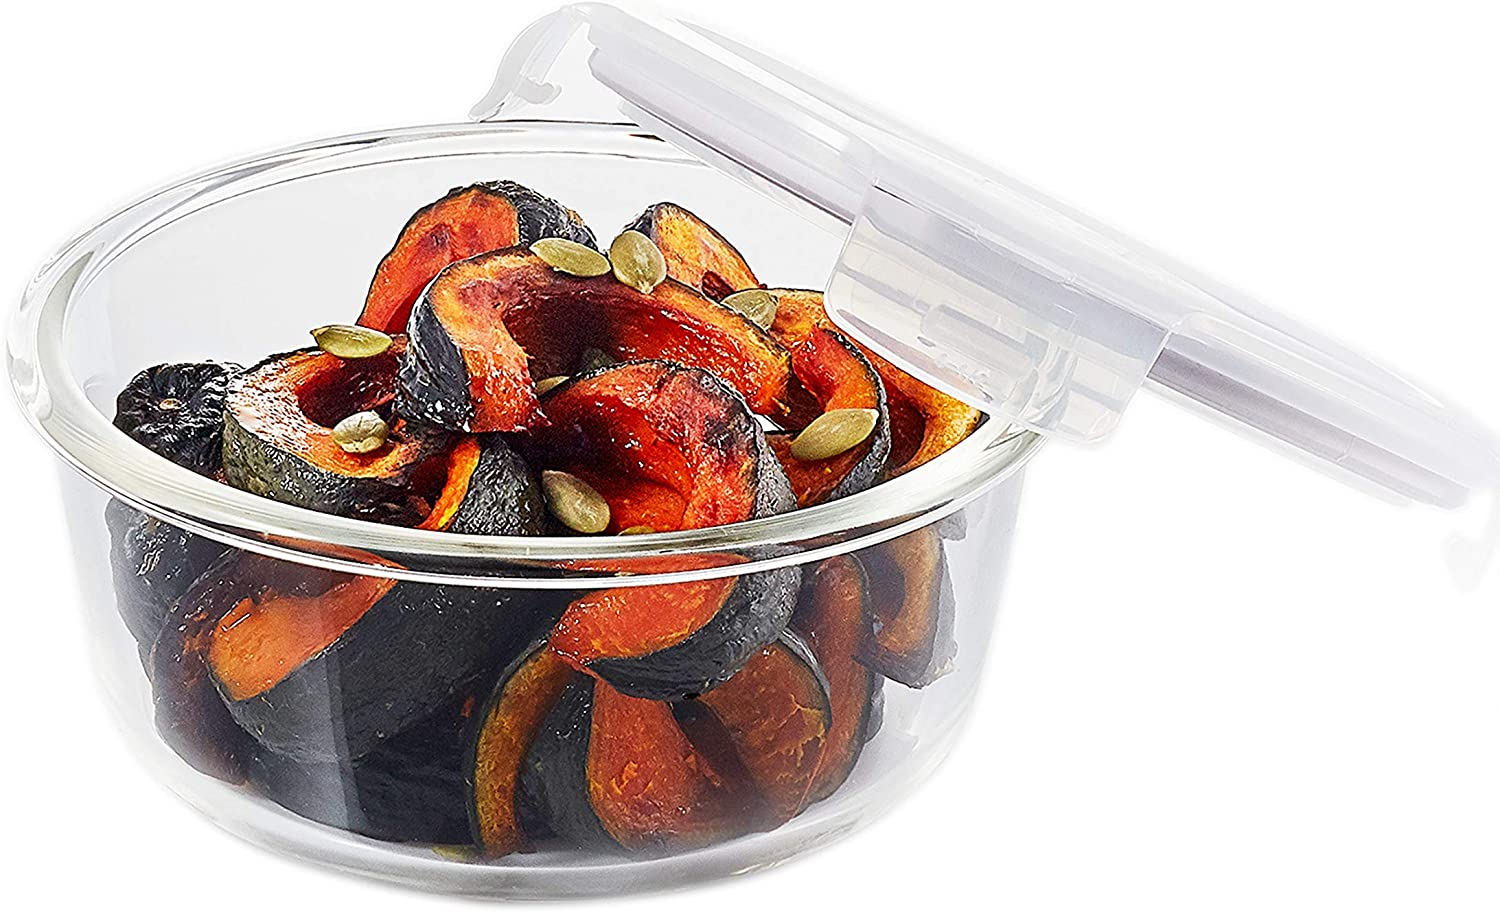 LOCK & LOCK Purely Better Glass Food Storage Container with Lid, Clear